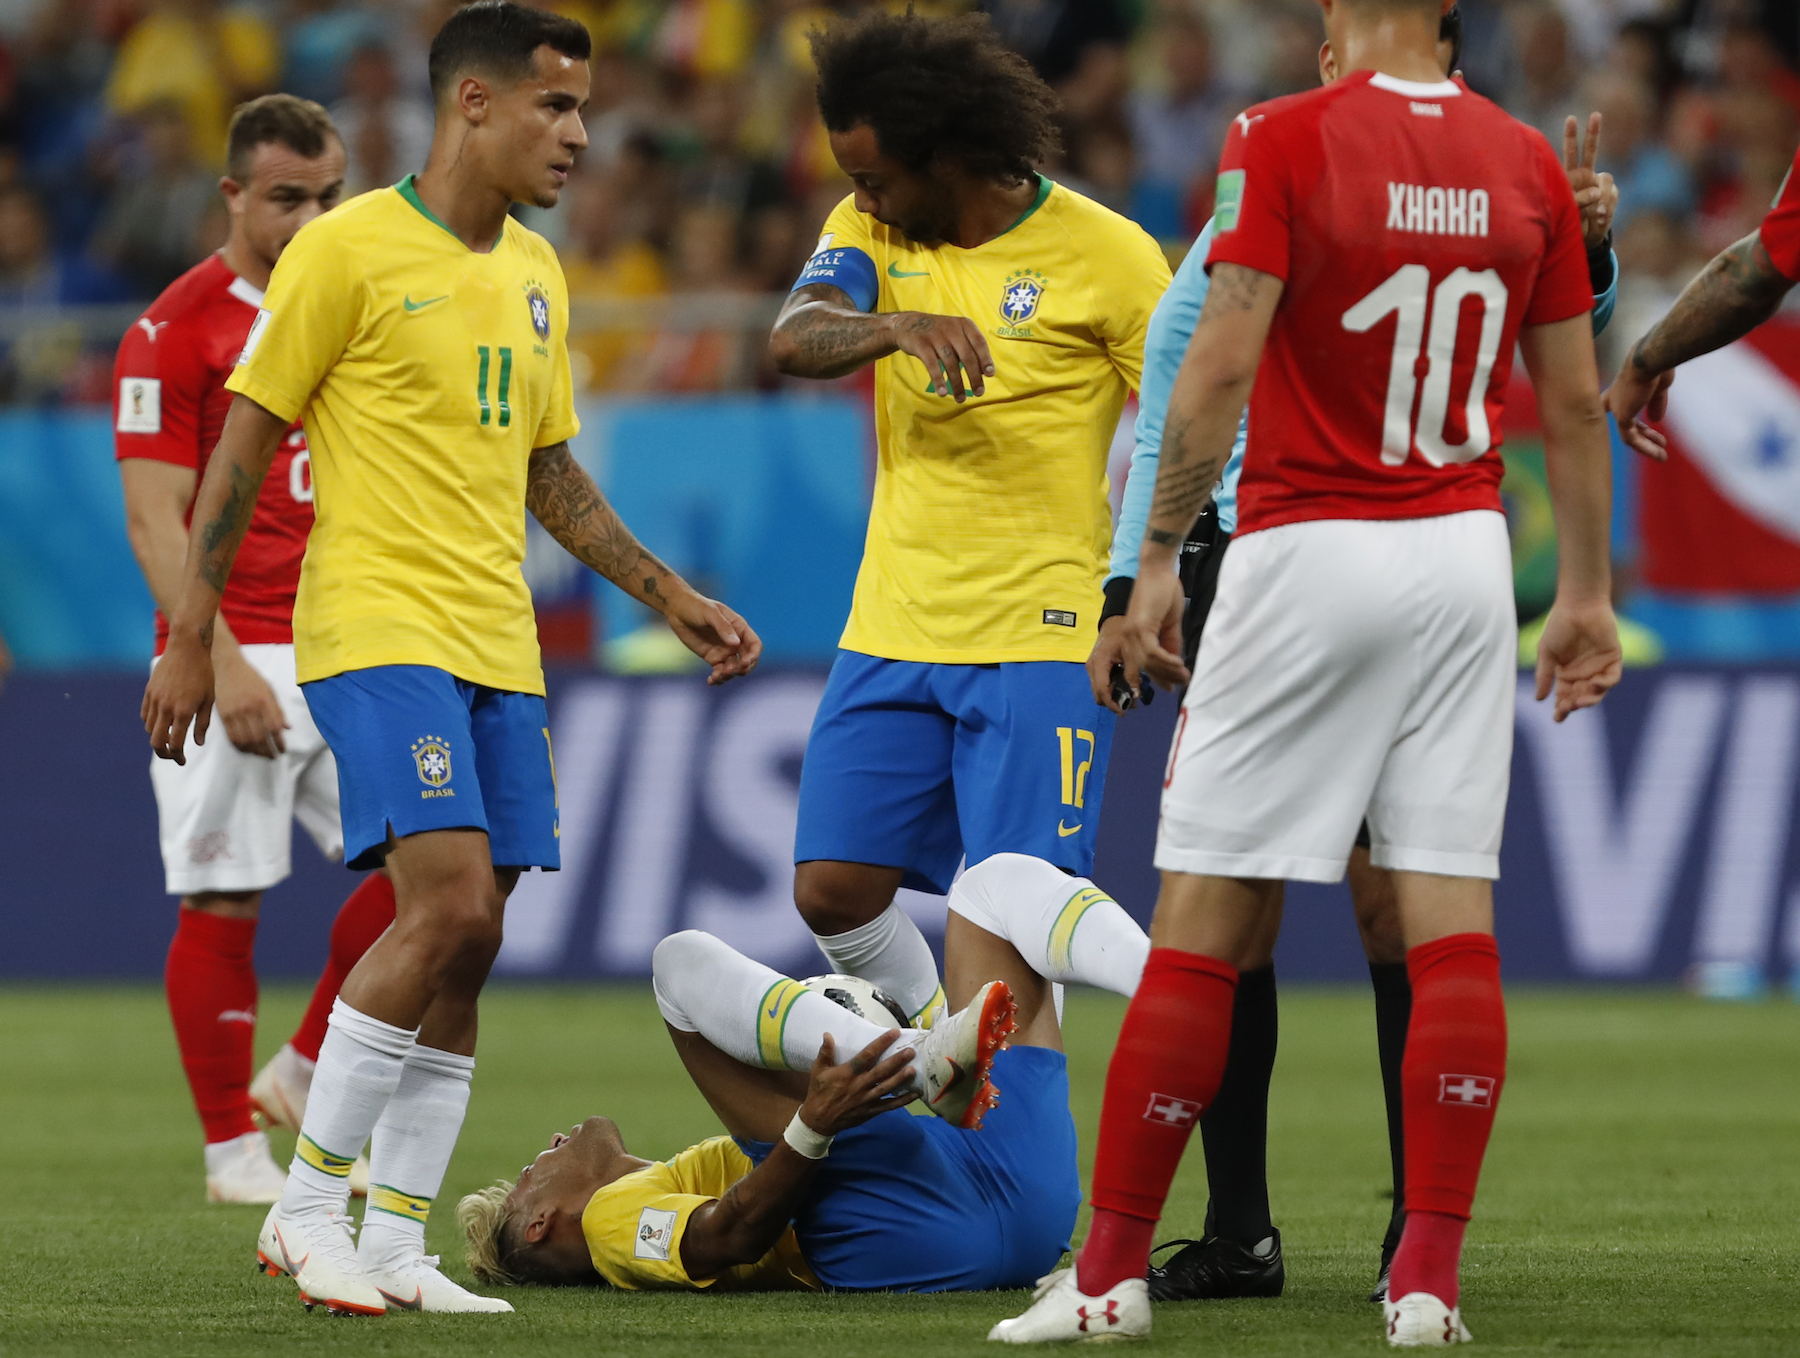 "<div class=""meta image-caption""><div class=""origin-logo origin-image ap""><span>AP</span></div><span class=""caption-text"">Brazil's Neymar lies on the ground during the group E match between Brazil and Switzerland at the 2018 soccer World Cup in the Rostov Arena in Rostov-on-Don, Russia. (AP Photo/Darko Vojinovic)</span></div>"